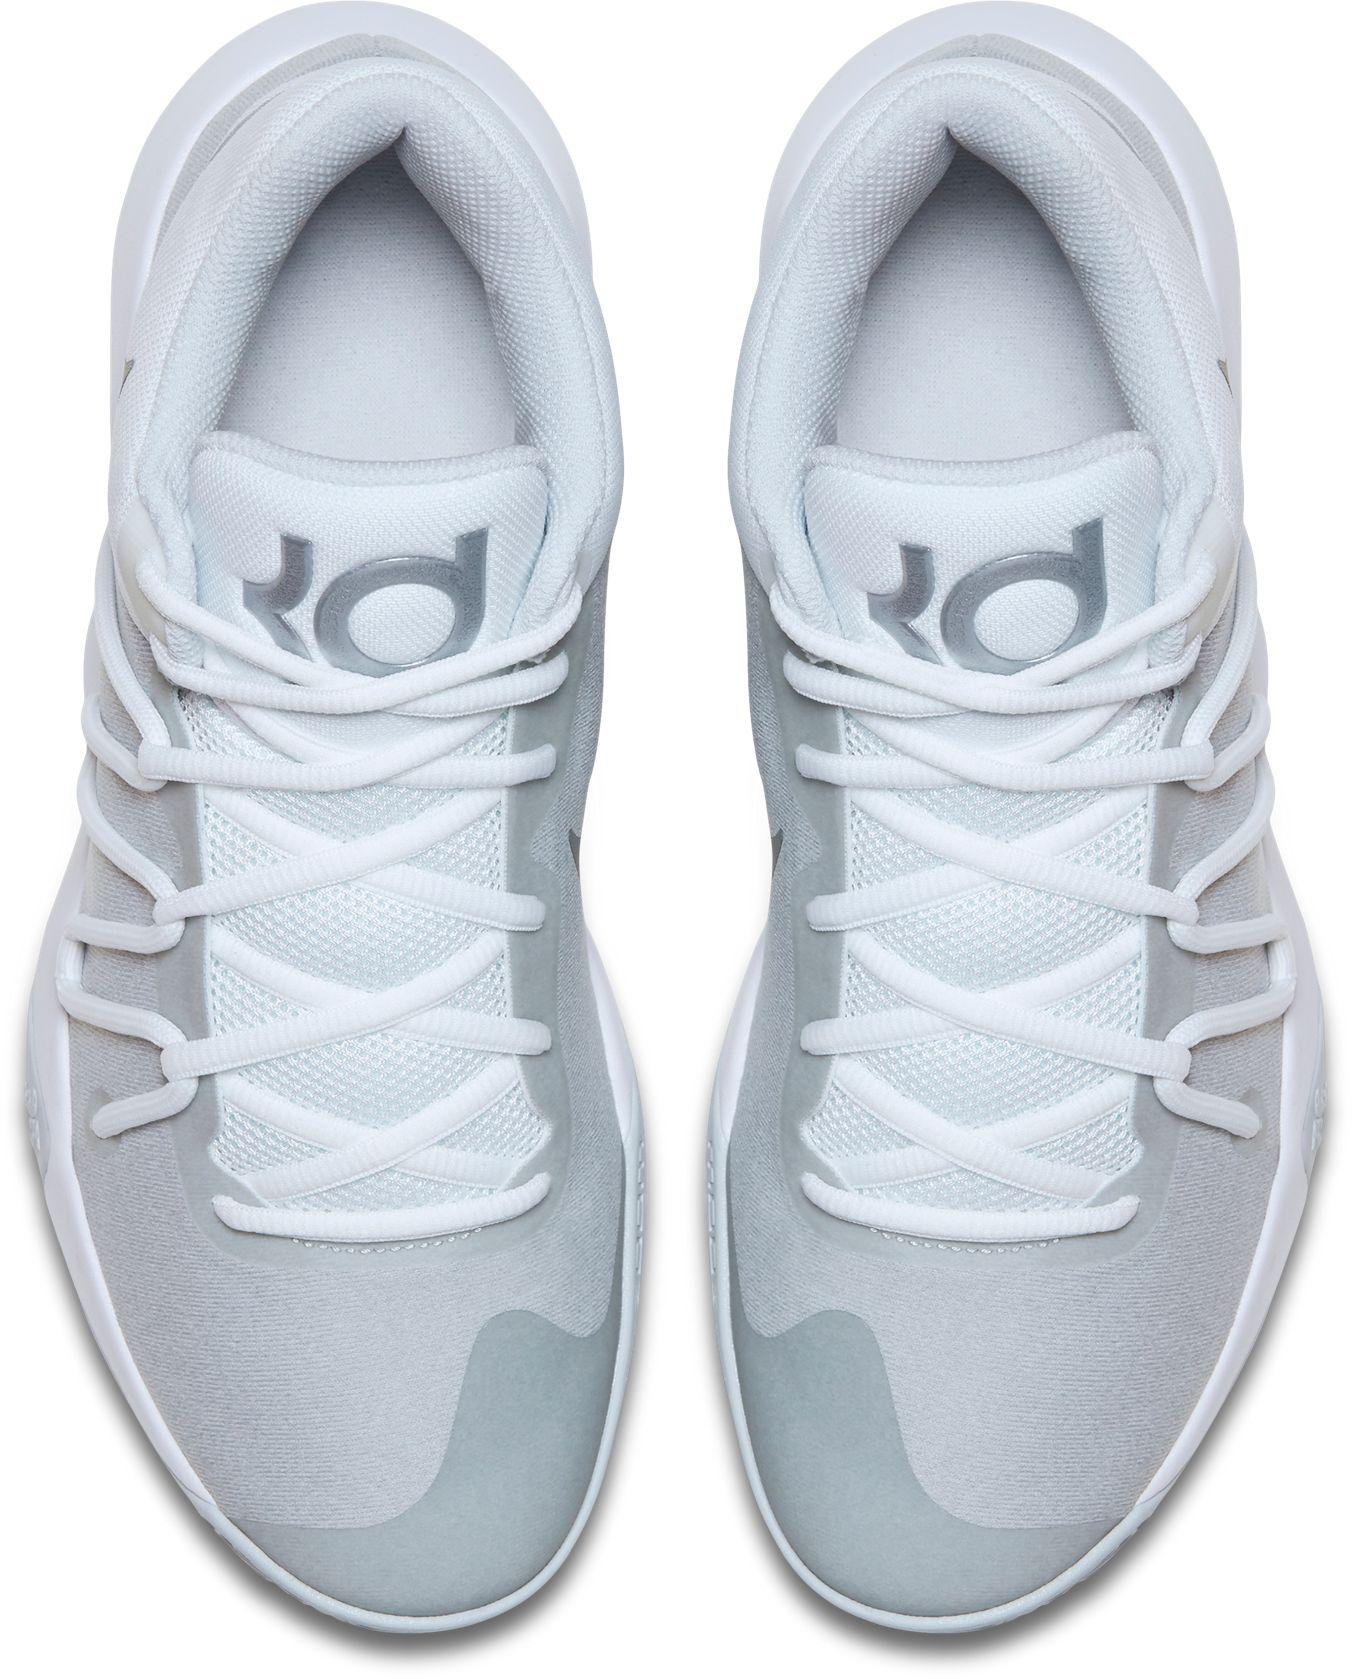 factory price 107a7 5a20f Lyst Nike Kd Trey 5 V Basketball Shoes In Gray For Men